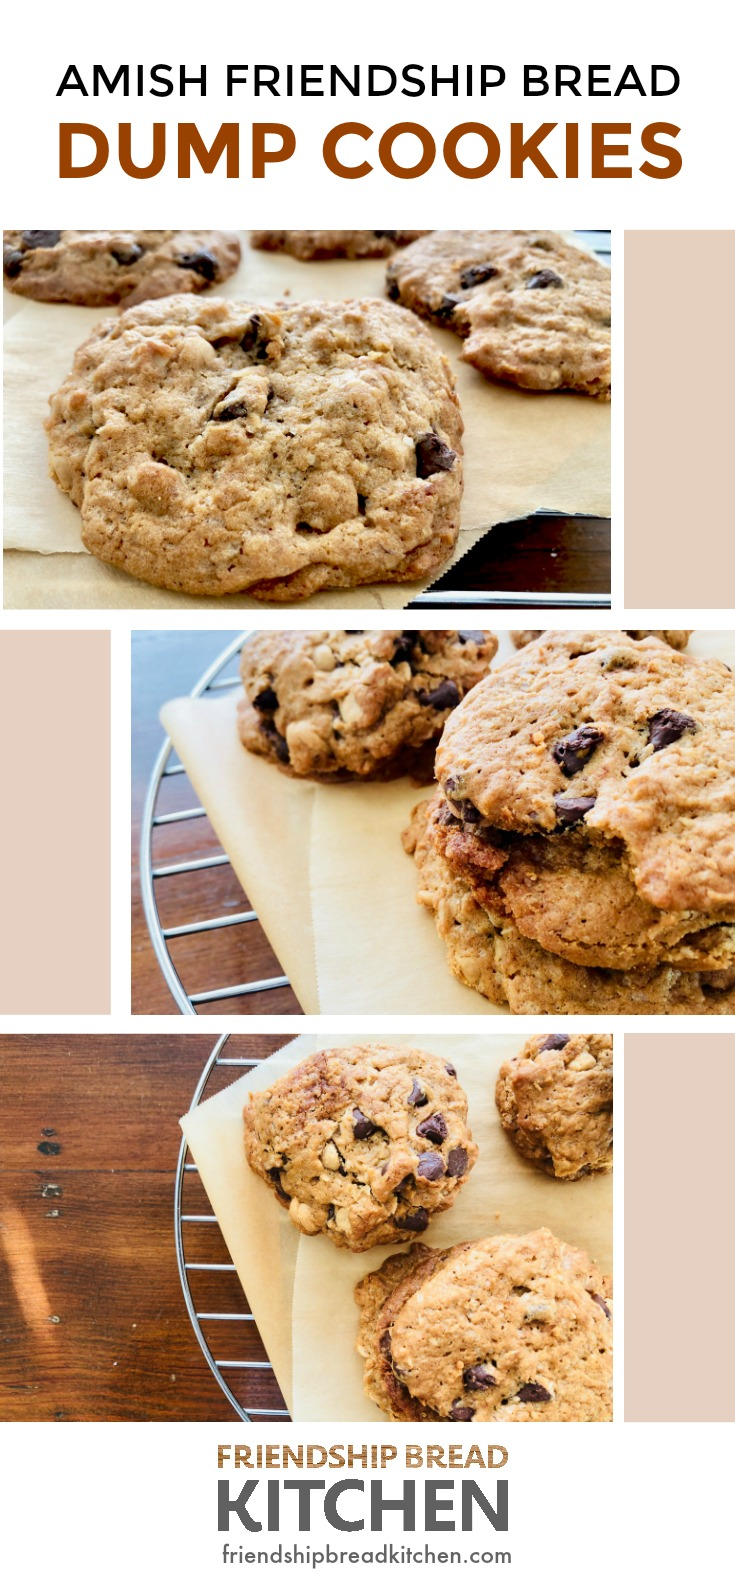 Amish Friendship Bread dump cookies collage